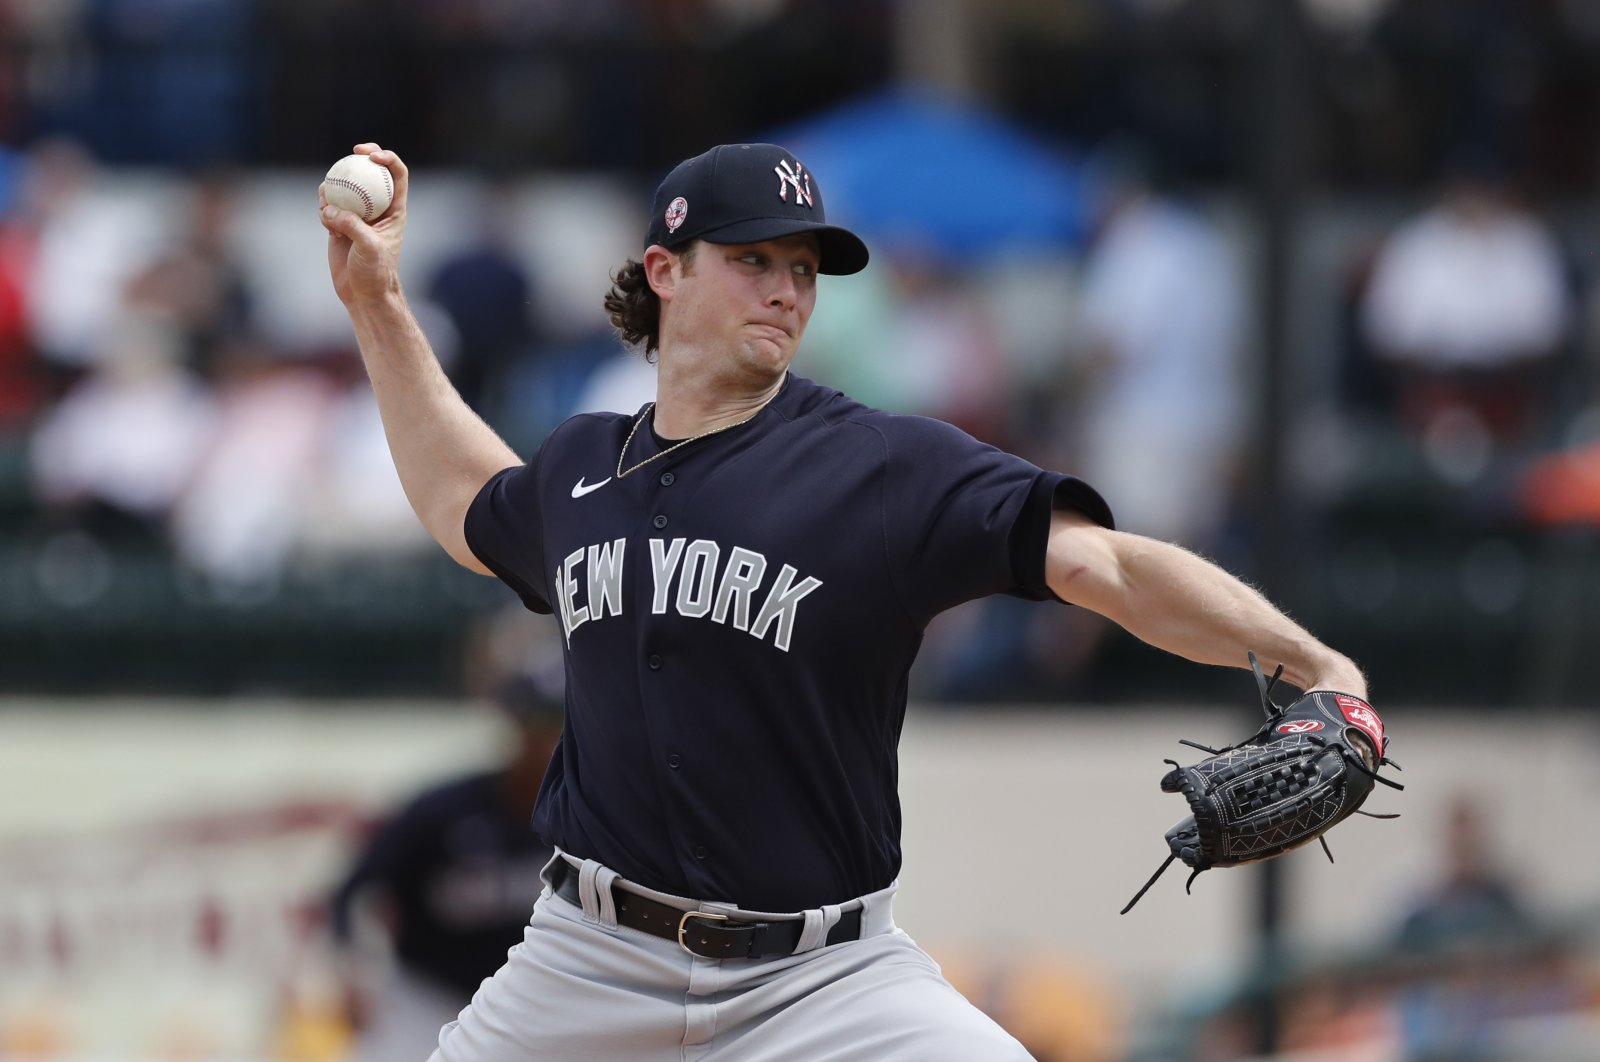 New York Yankees starting pitcher Gerrit Cole throws during a spring training baseball game against the Detroit Tigers in Lakeland, Fla., U.S., March 5, 2020. (AP Photo)